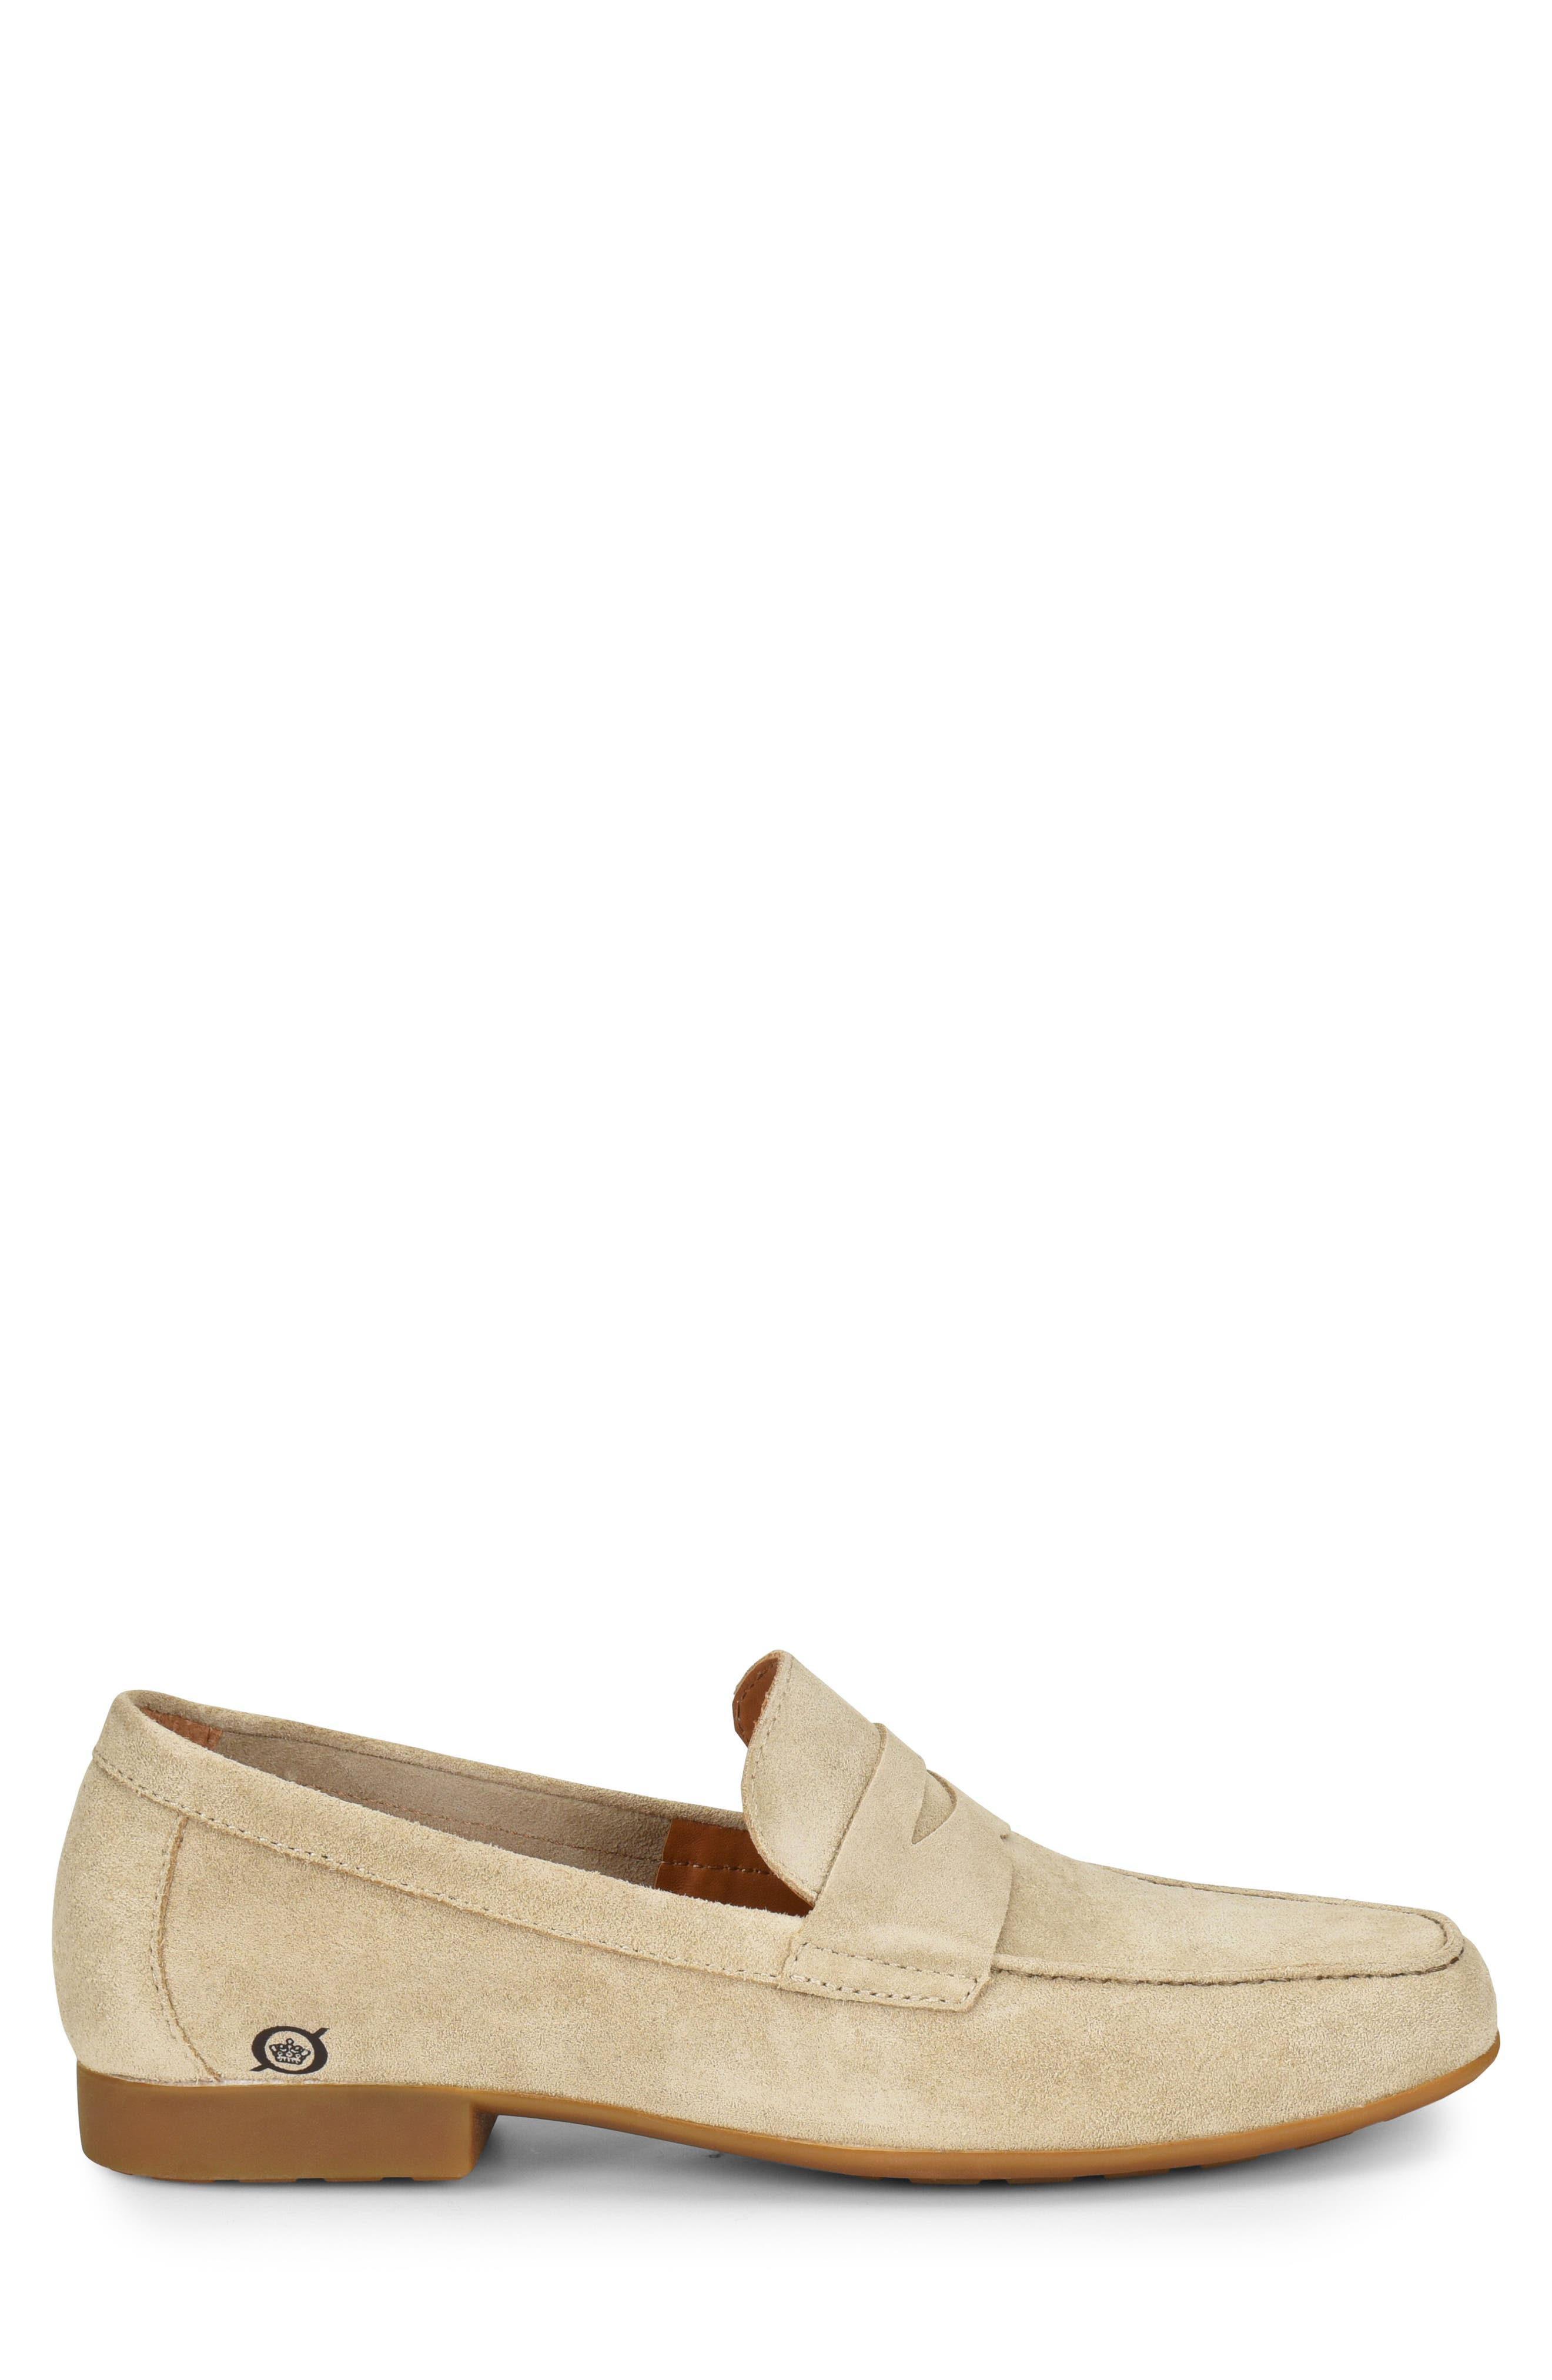 'Dave' Penny Loafer,                             Alternate thumbnail 3, color,                             Natural Suede